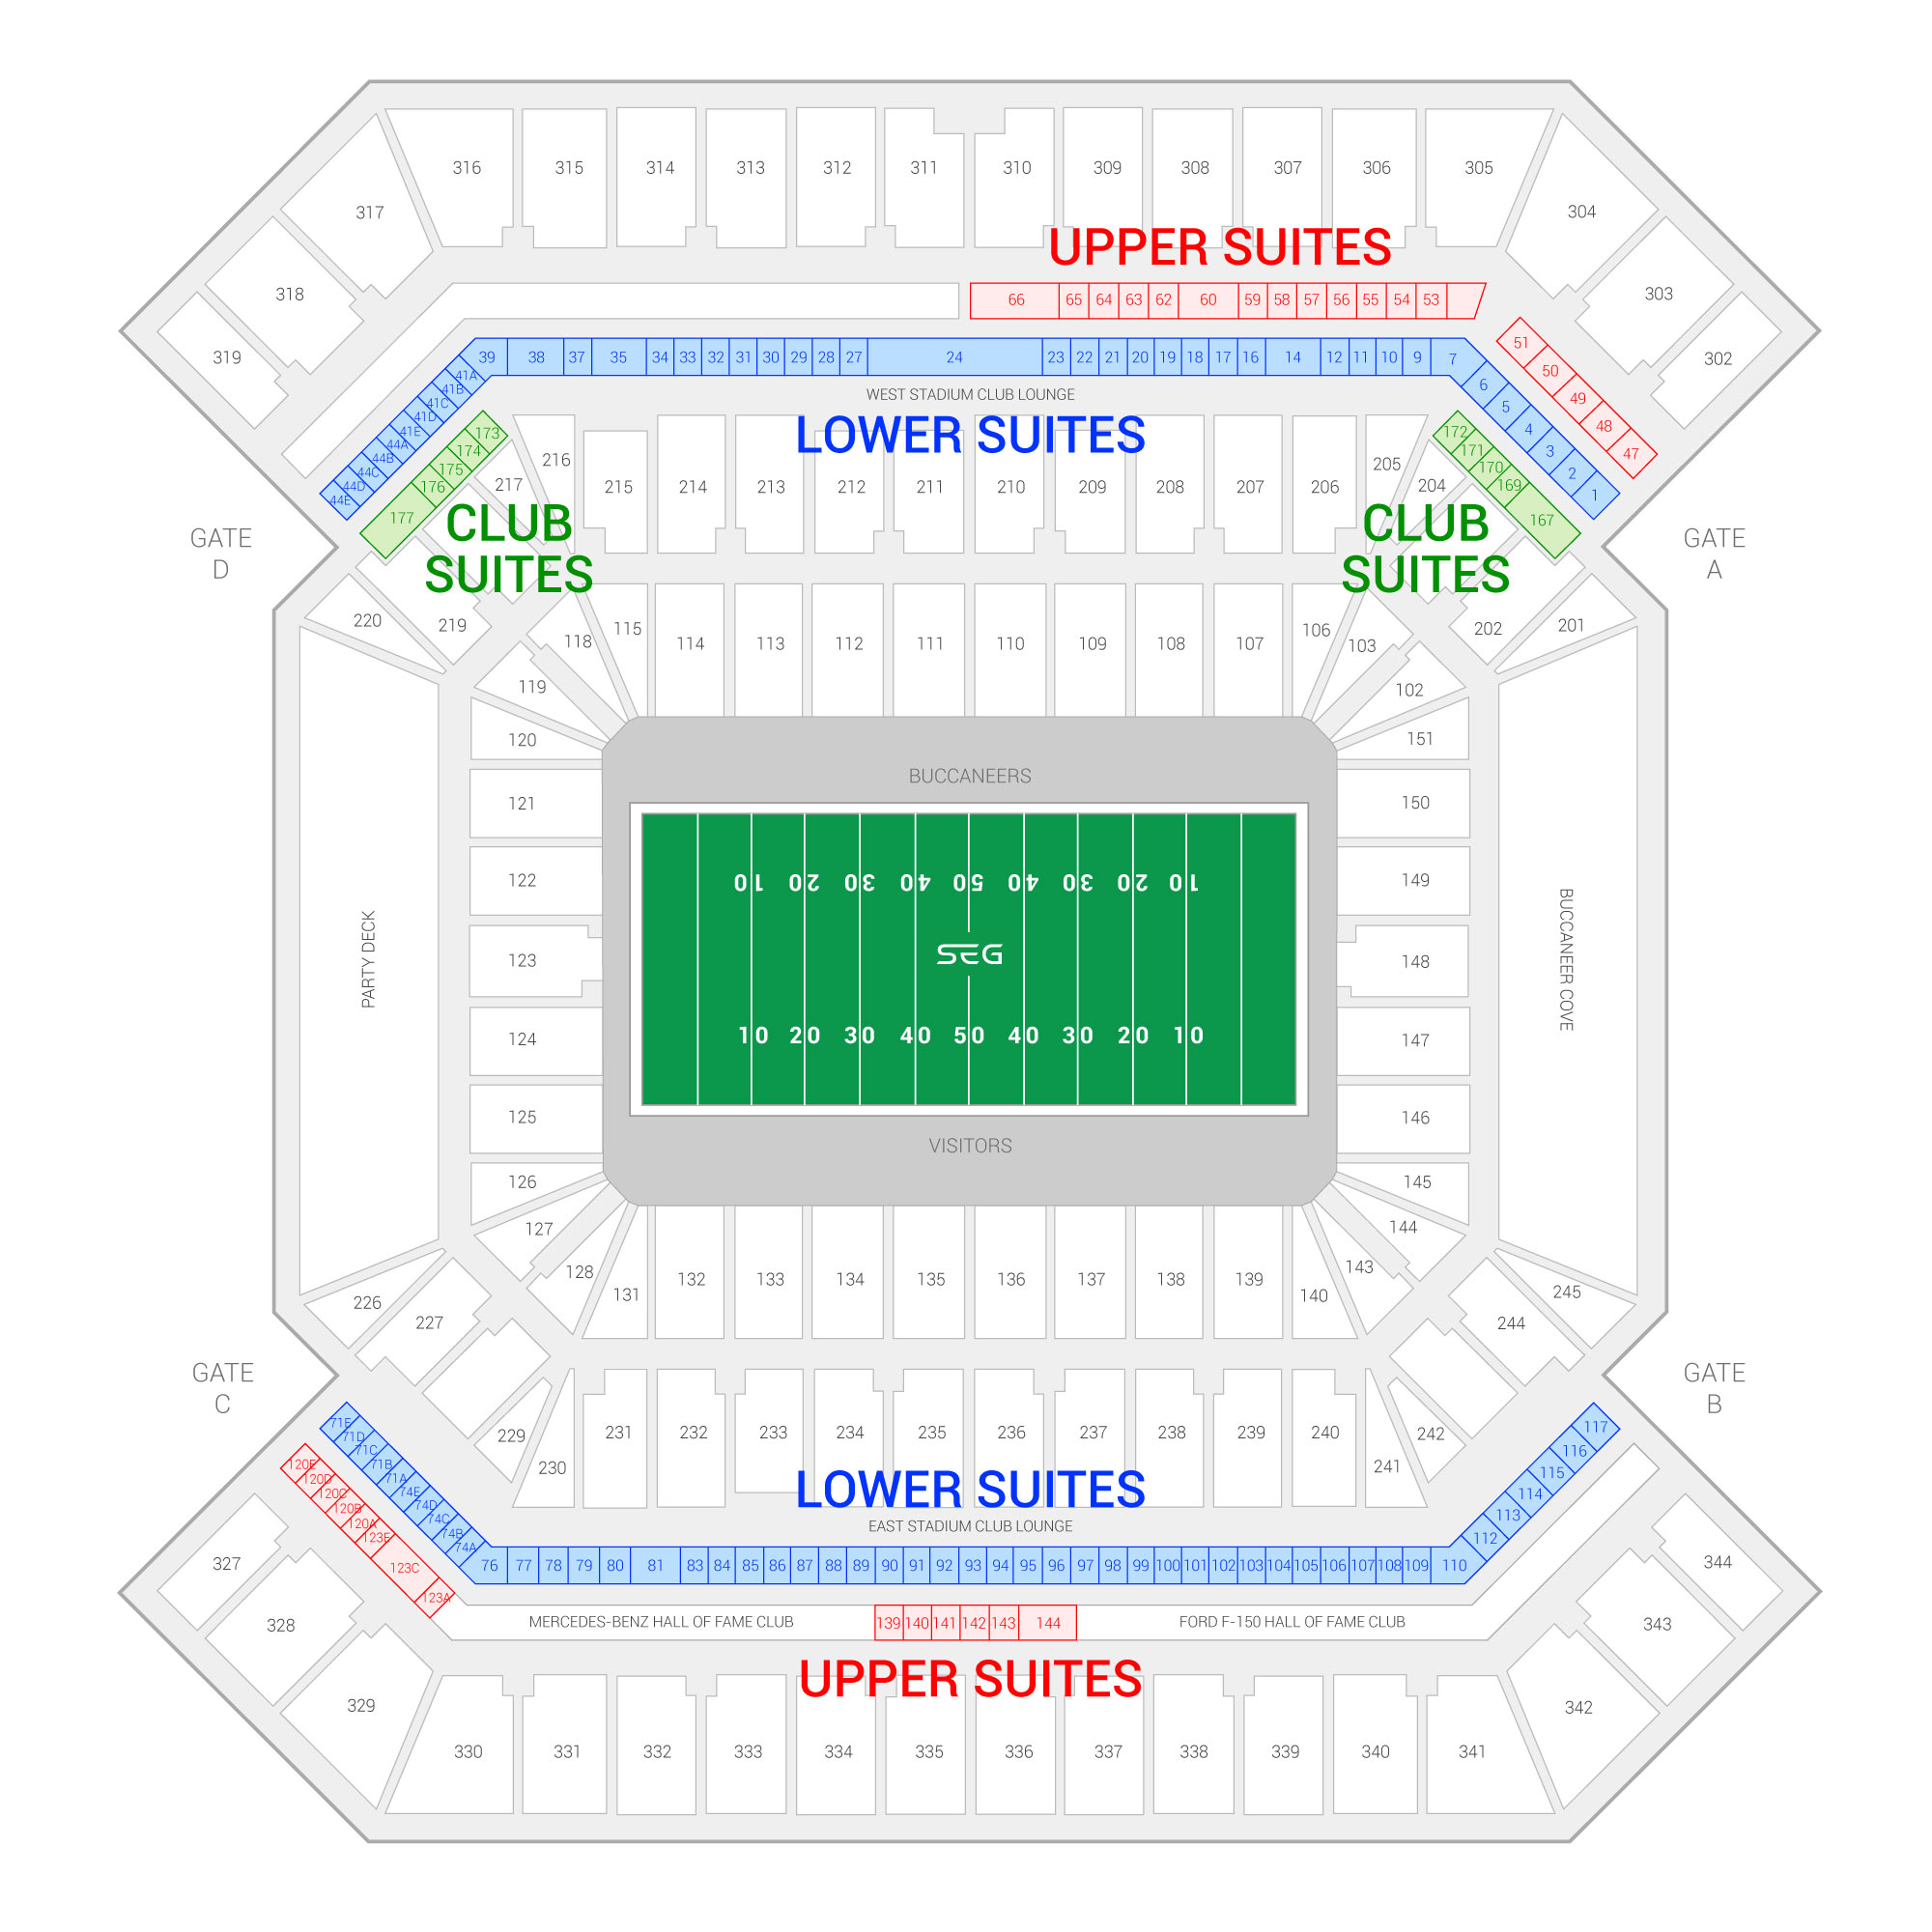 Raymond James Stadium / Tampa Bay Buccaneers Suite Map and Seating Chart